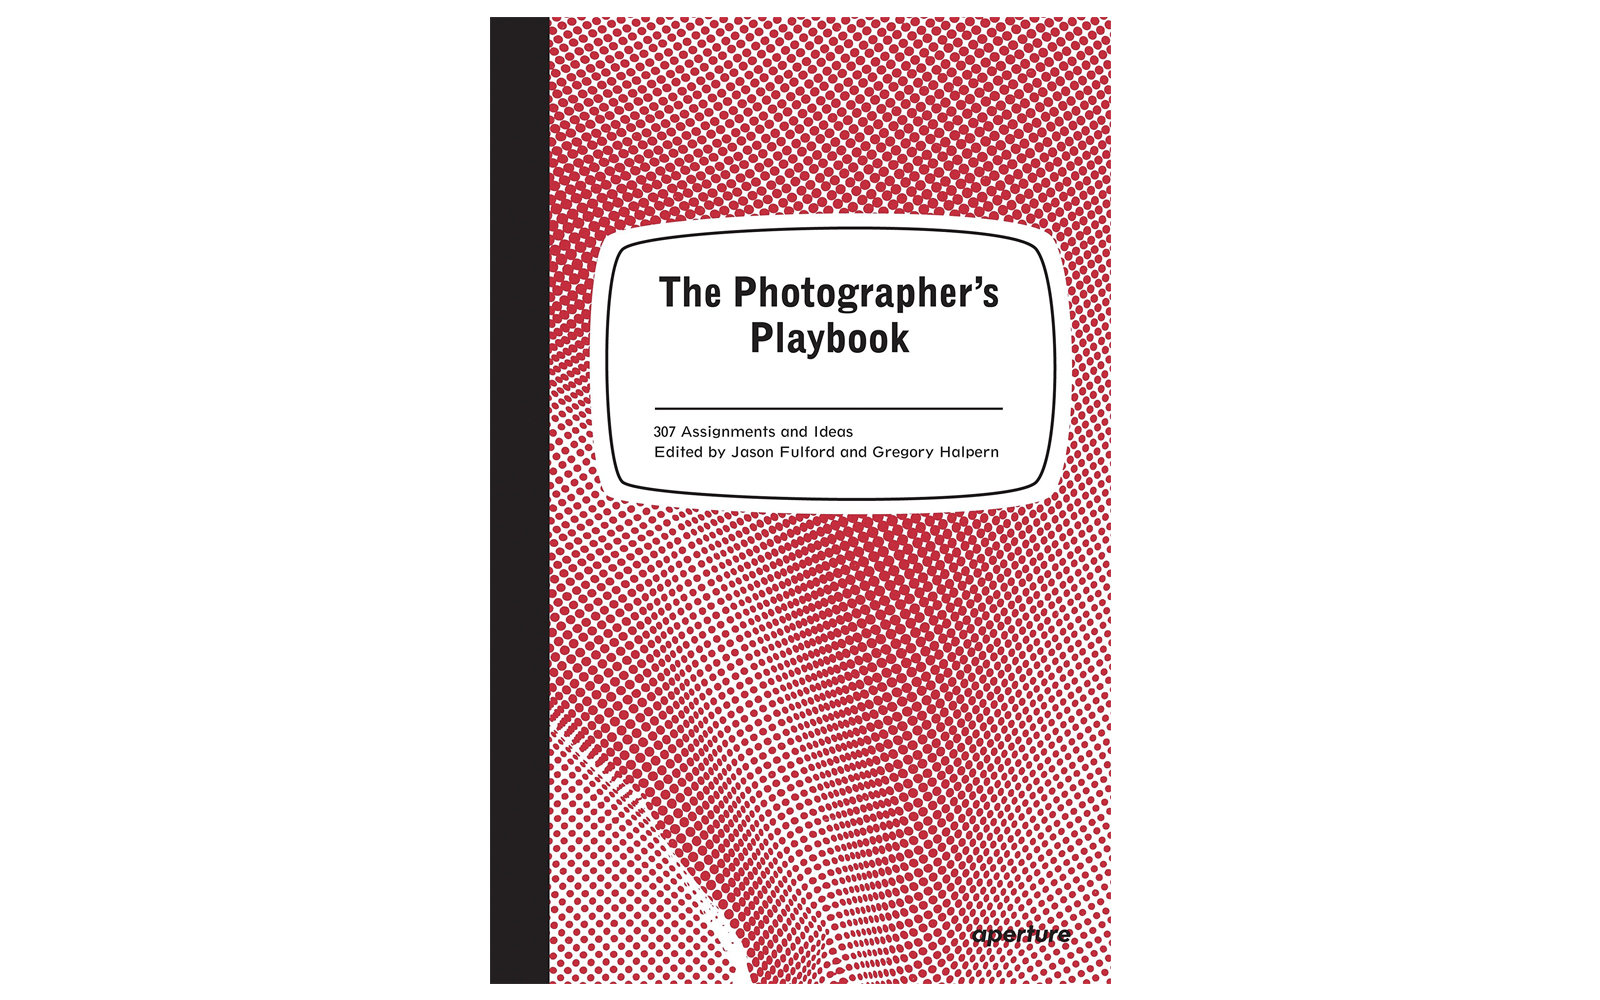 The Photographer's Playbook: 307 Assignments and Ideas  by Jason Fulford and Gregory Halpern